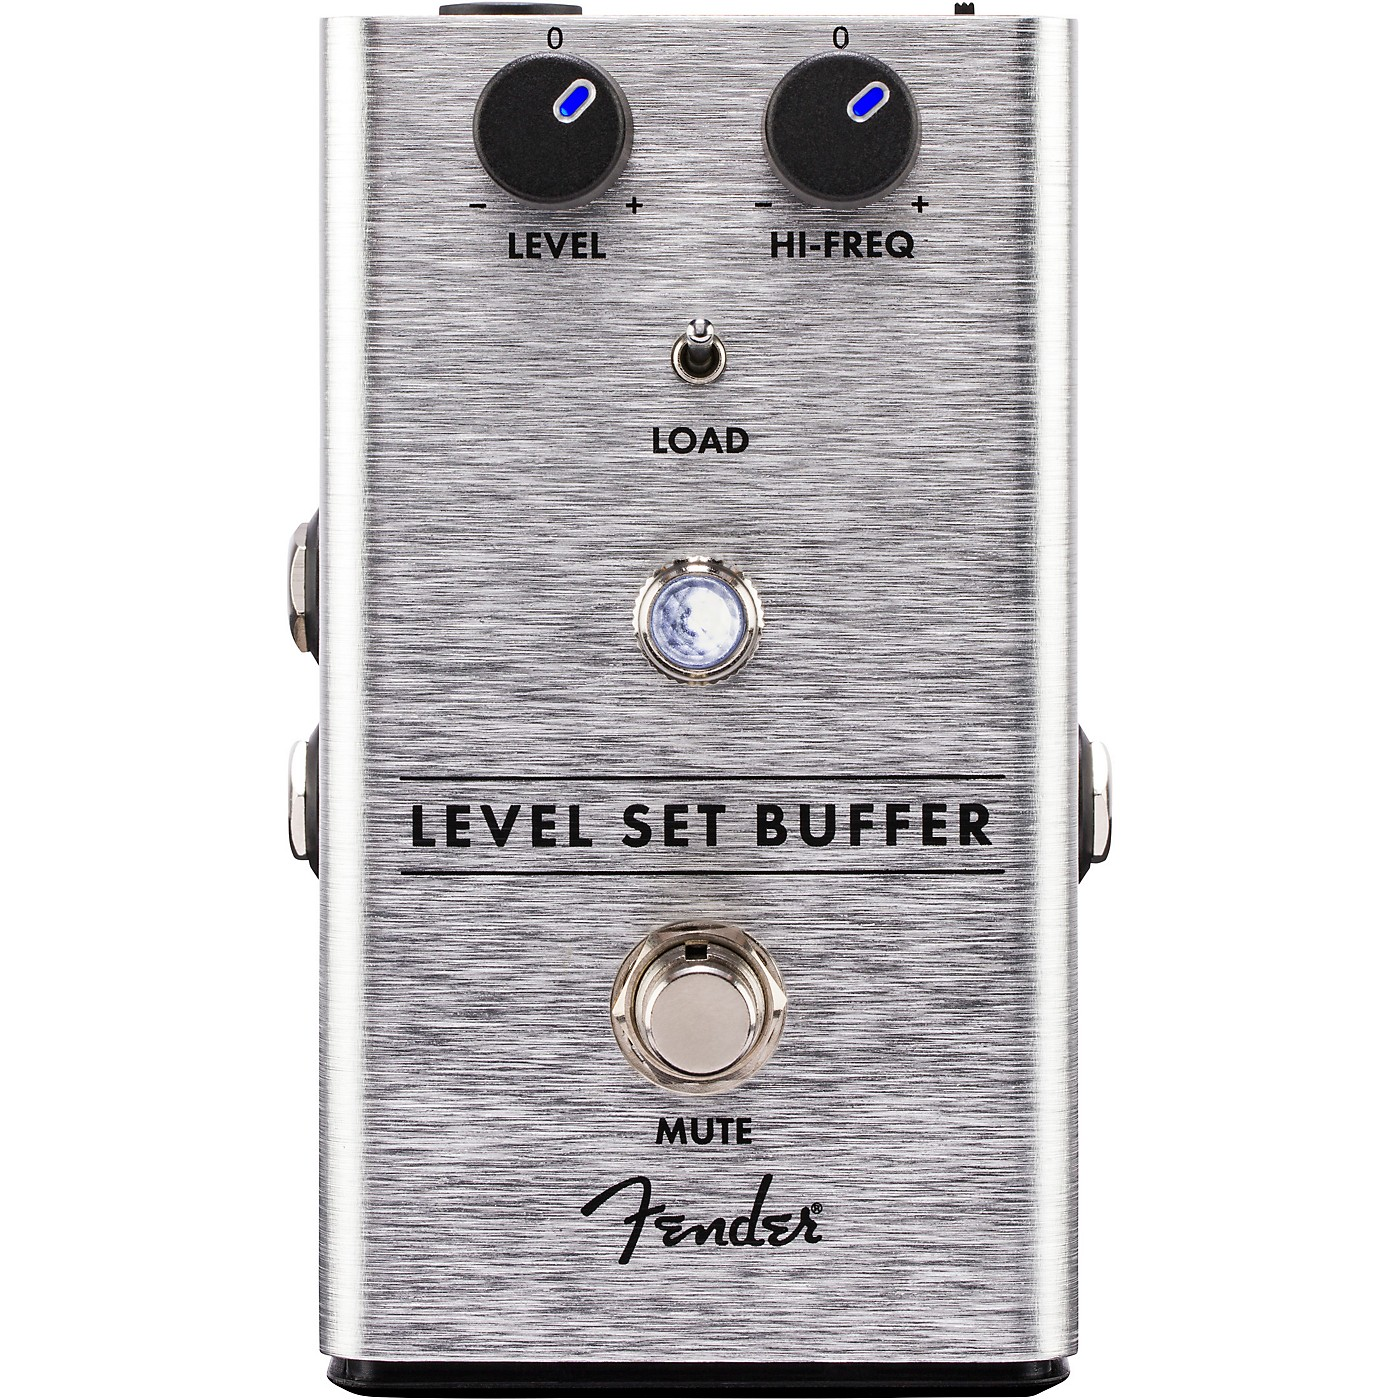 Fender Level Set Buffer Effects Pedal thumbnail